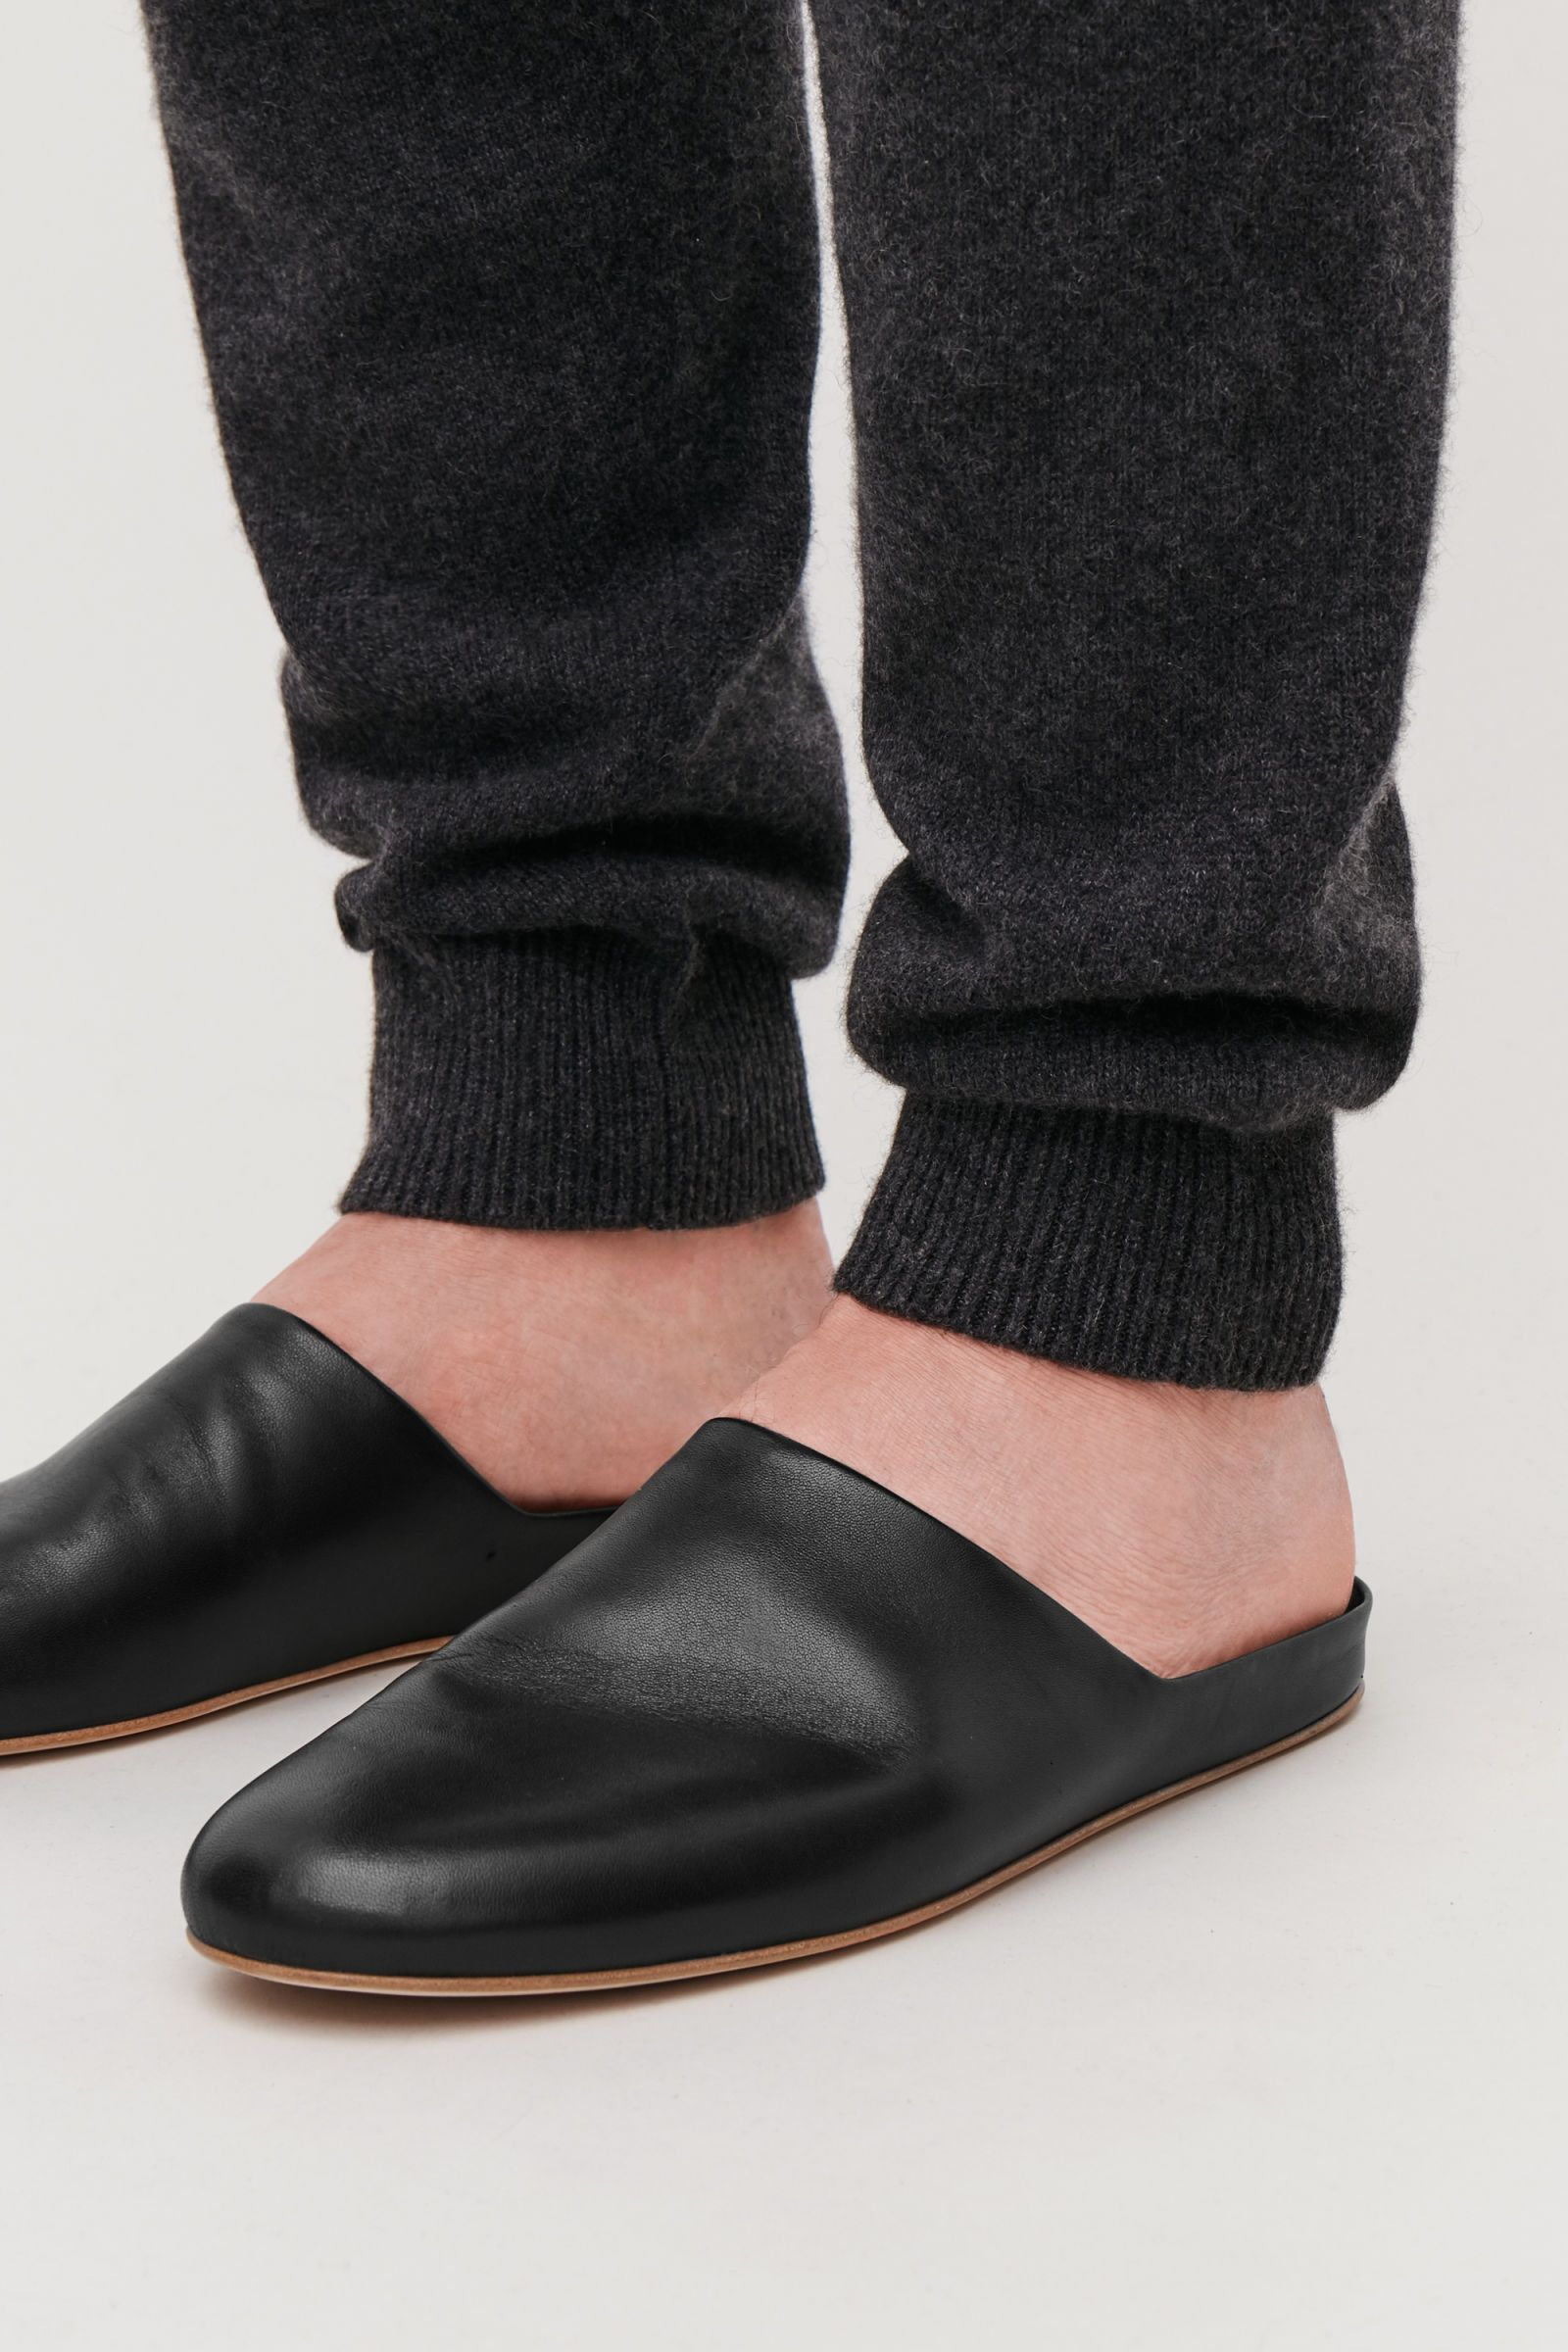 a5c88ddf6c3 COS | Leather slippers | wear in 2019 | Black slippers, Leather ...